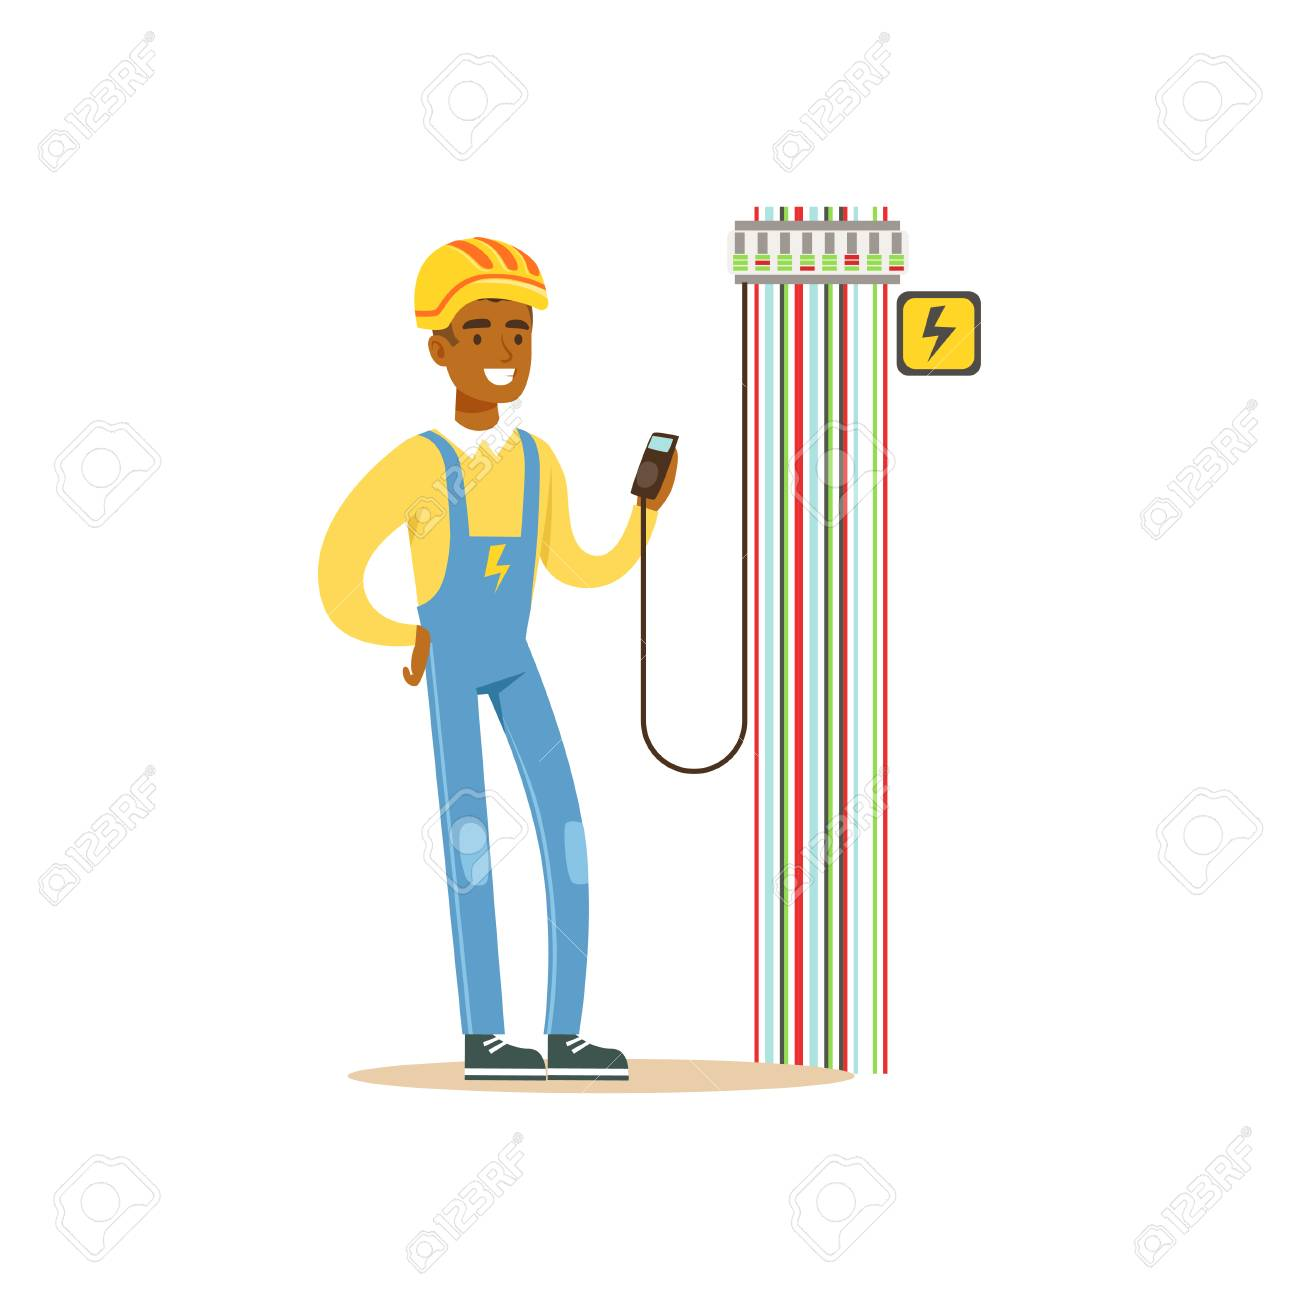 hight resolution of professional electrician man character measuring the voltage output in fuse box electrical works vector illustration